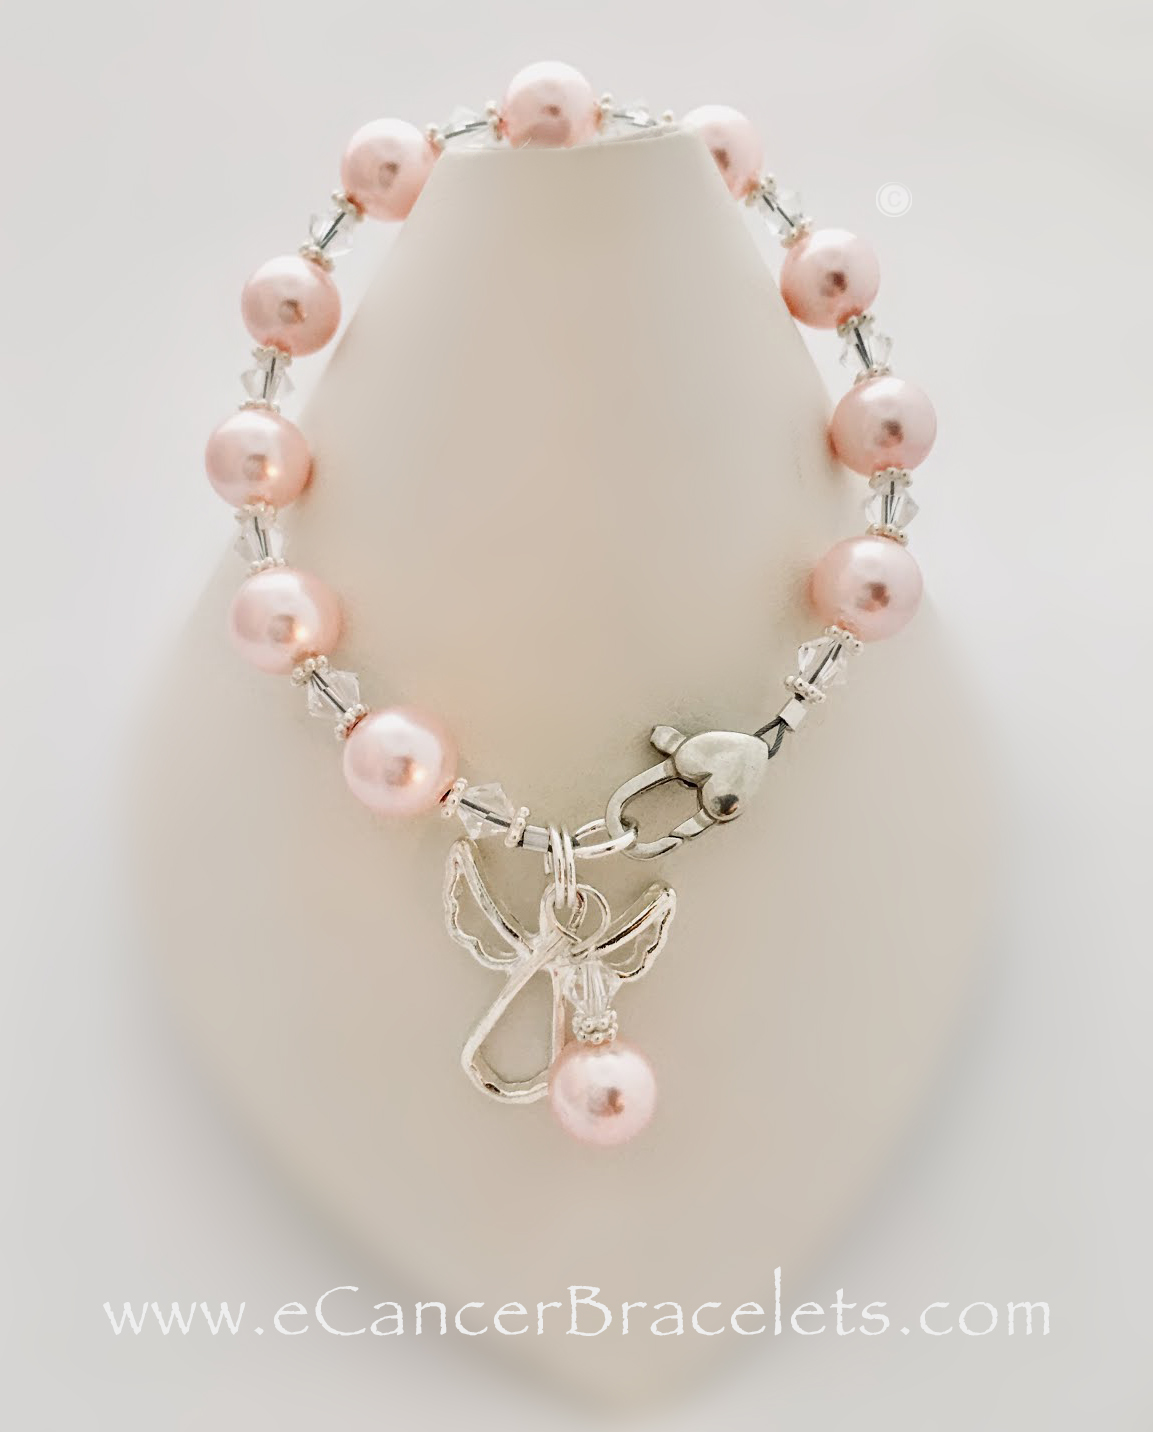 Guardian Angel Bracelet shown with Pink Swarovski Pearls. The charms shown come with the bracelet.